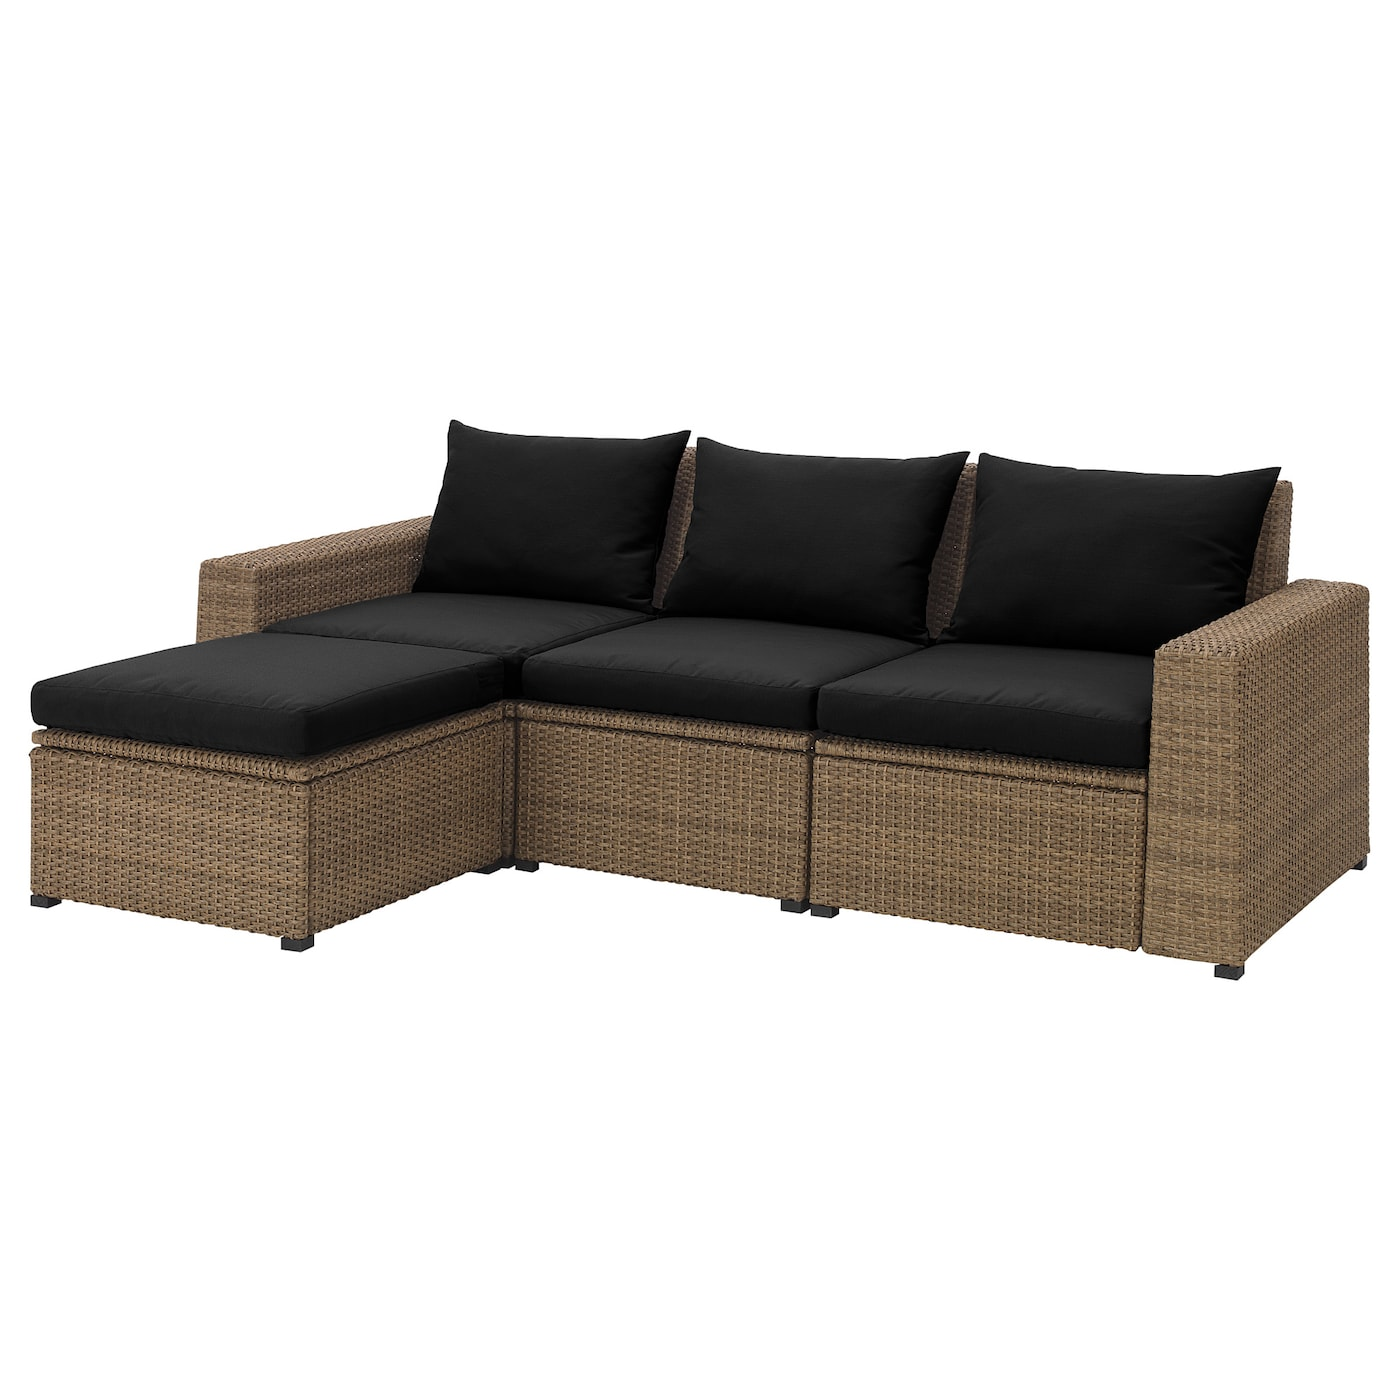 soller n 3 seat sofa with footstool outdoor brown h ll black 223x145x82 cm ikea. Black Bedroom Furniture Sets. Home Design Ideas